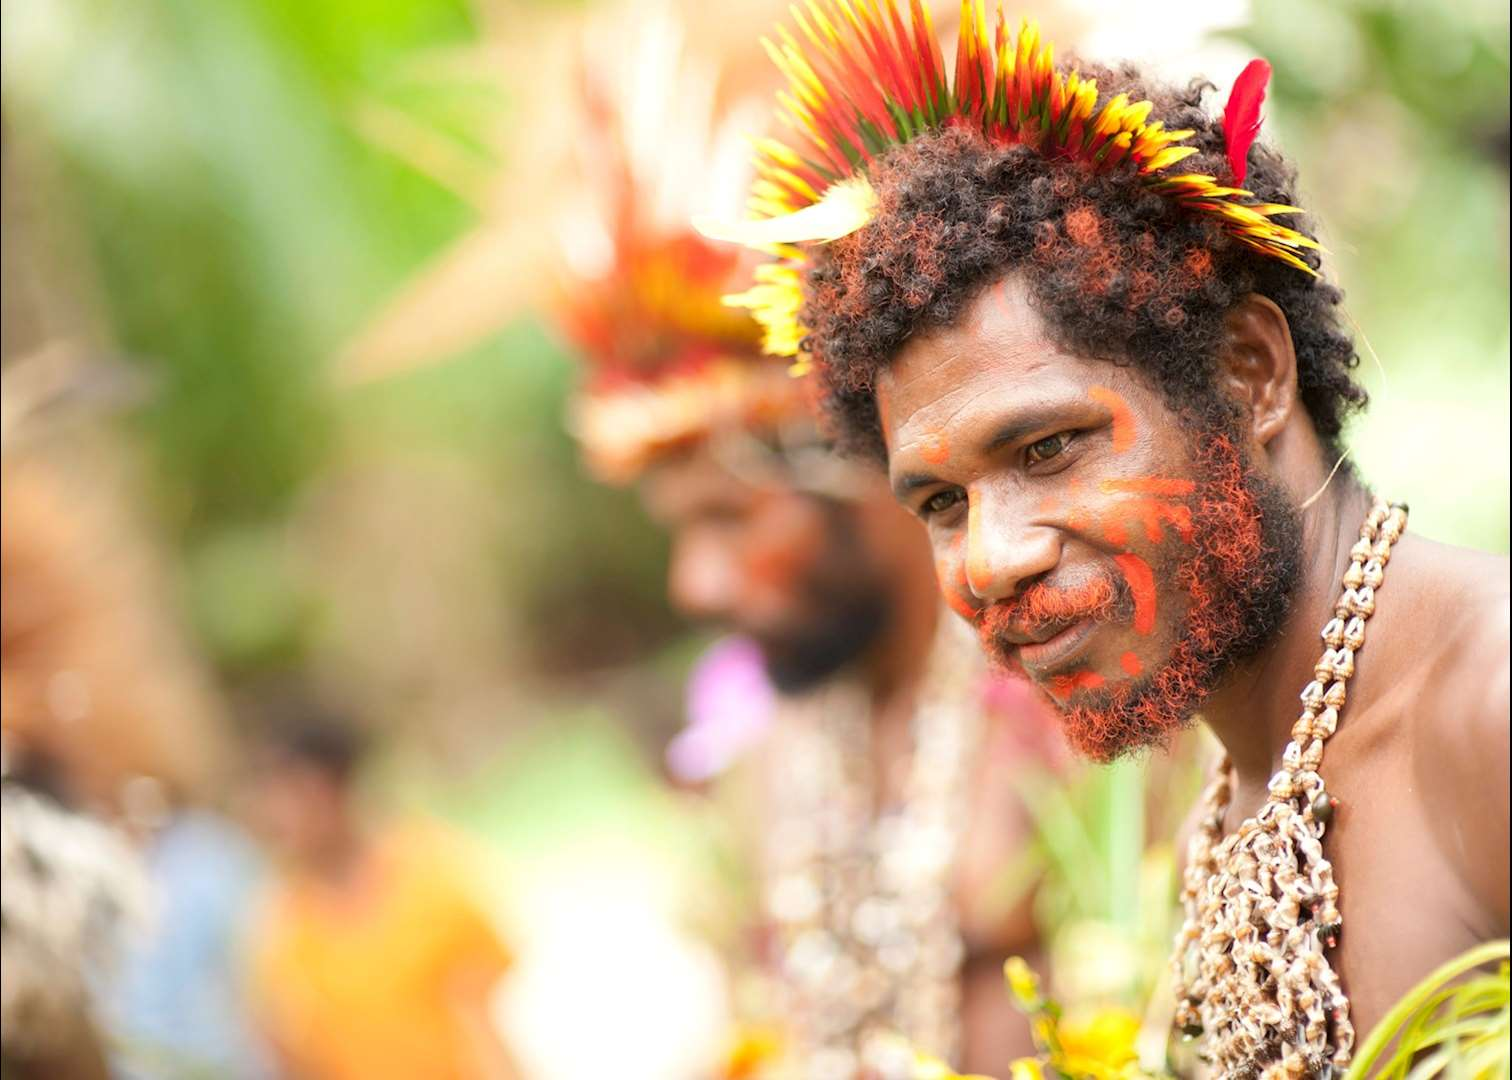 Meeting indigenous cultures in Southeast Asia | Audley Travel